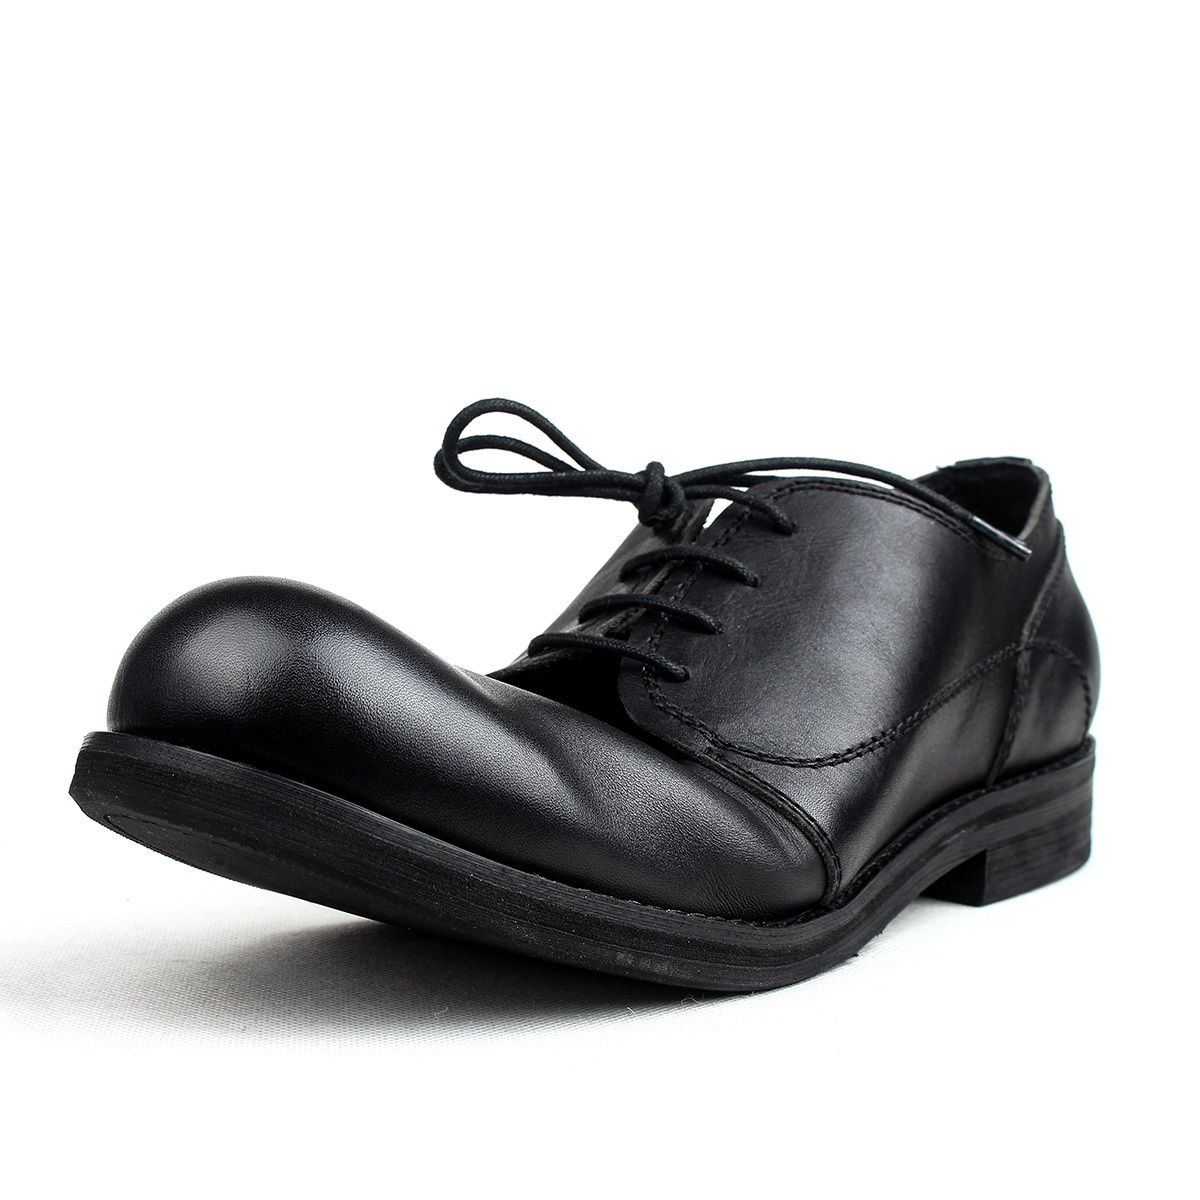 Retro Men's Casual Leather Shoes Big Head Leather Shoes Spring Autumn Men's Shoes